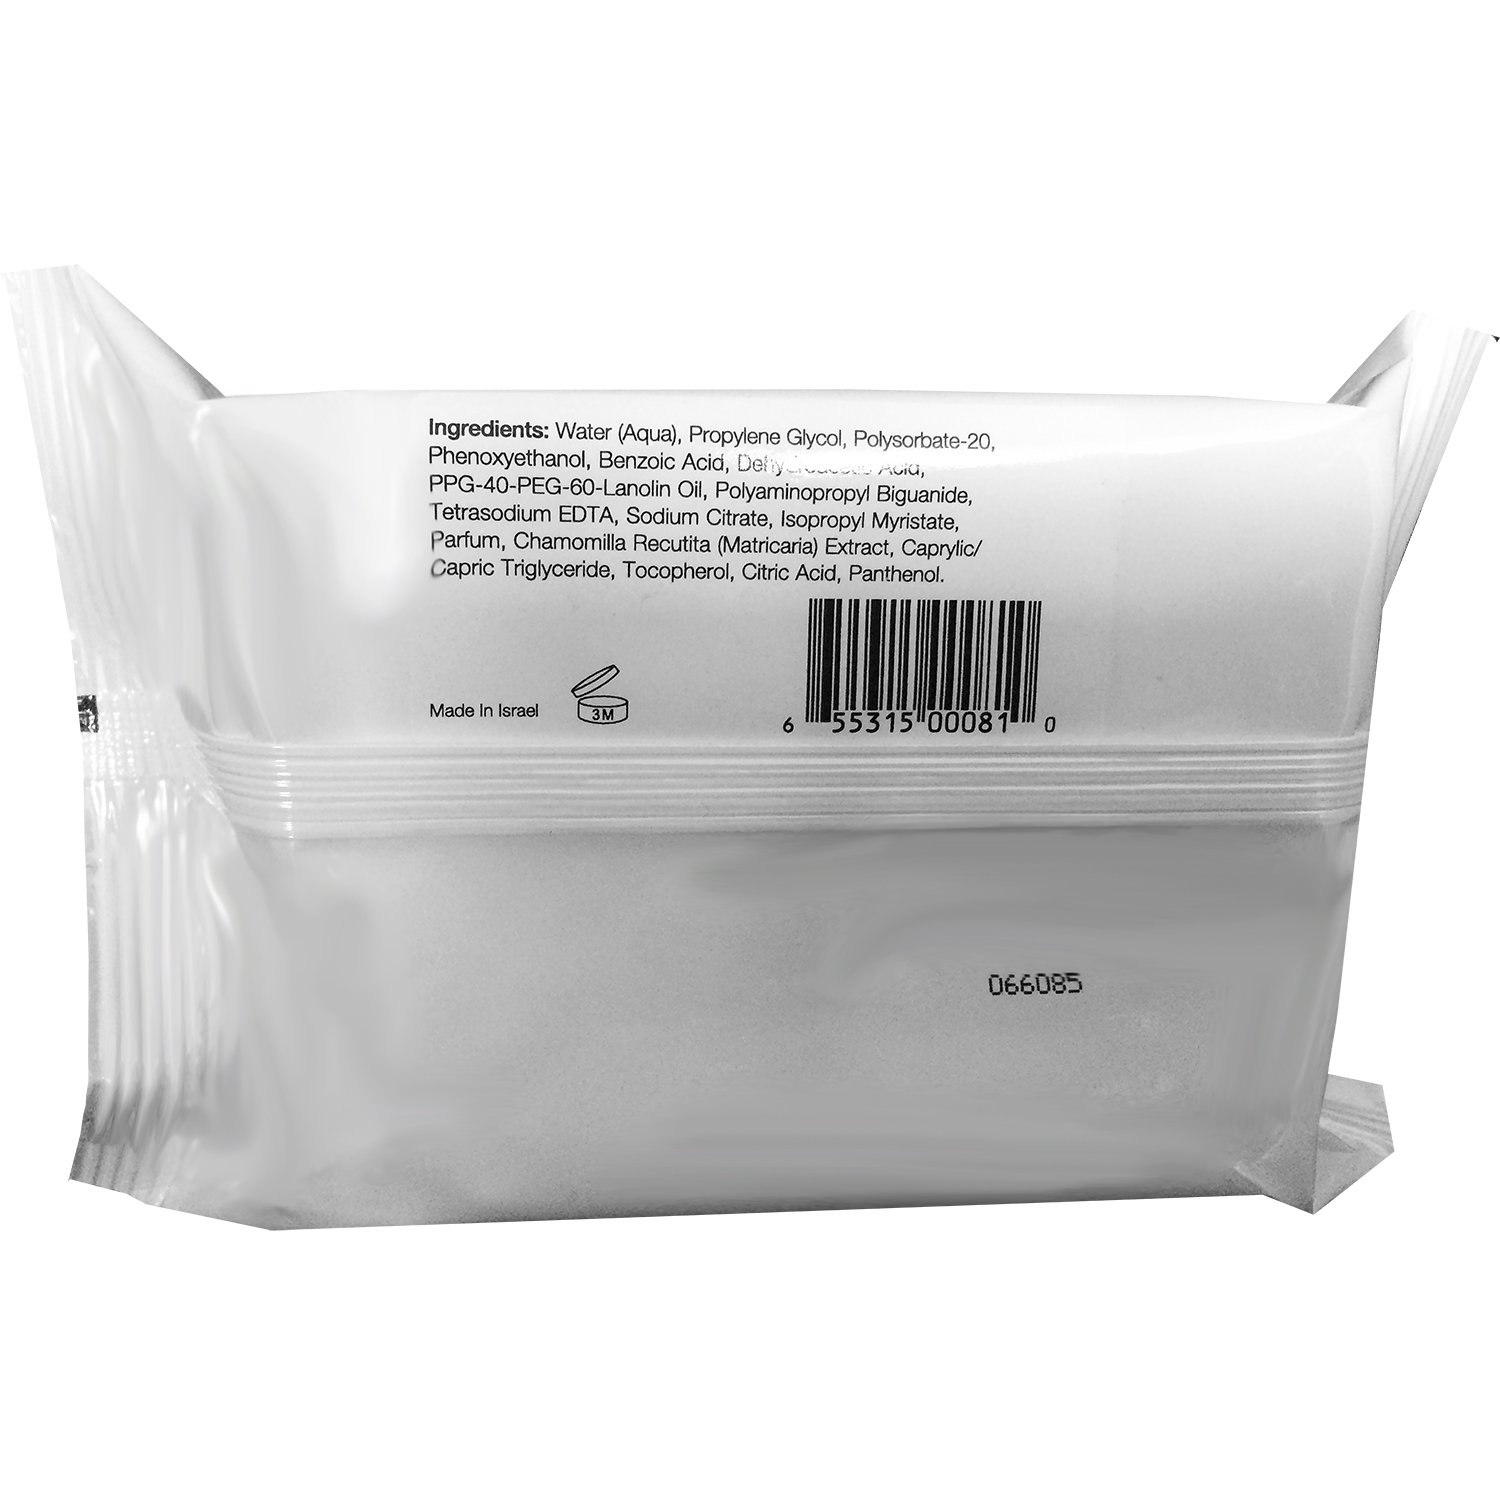 A World Of Wipes Professional Make-Up Remover Wipes, 25-Count Container, 24 Packs